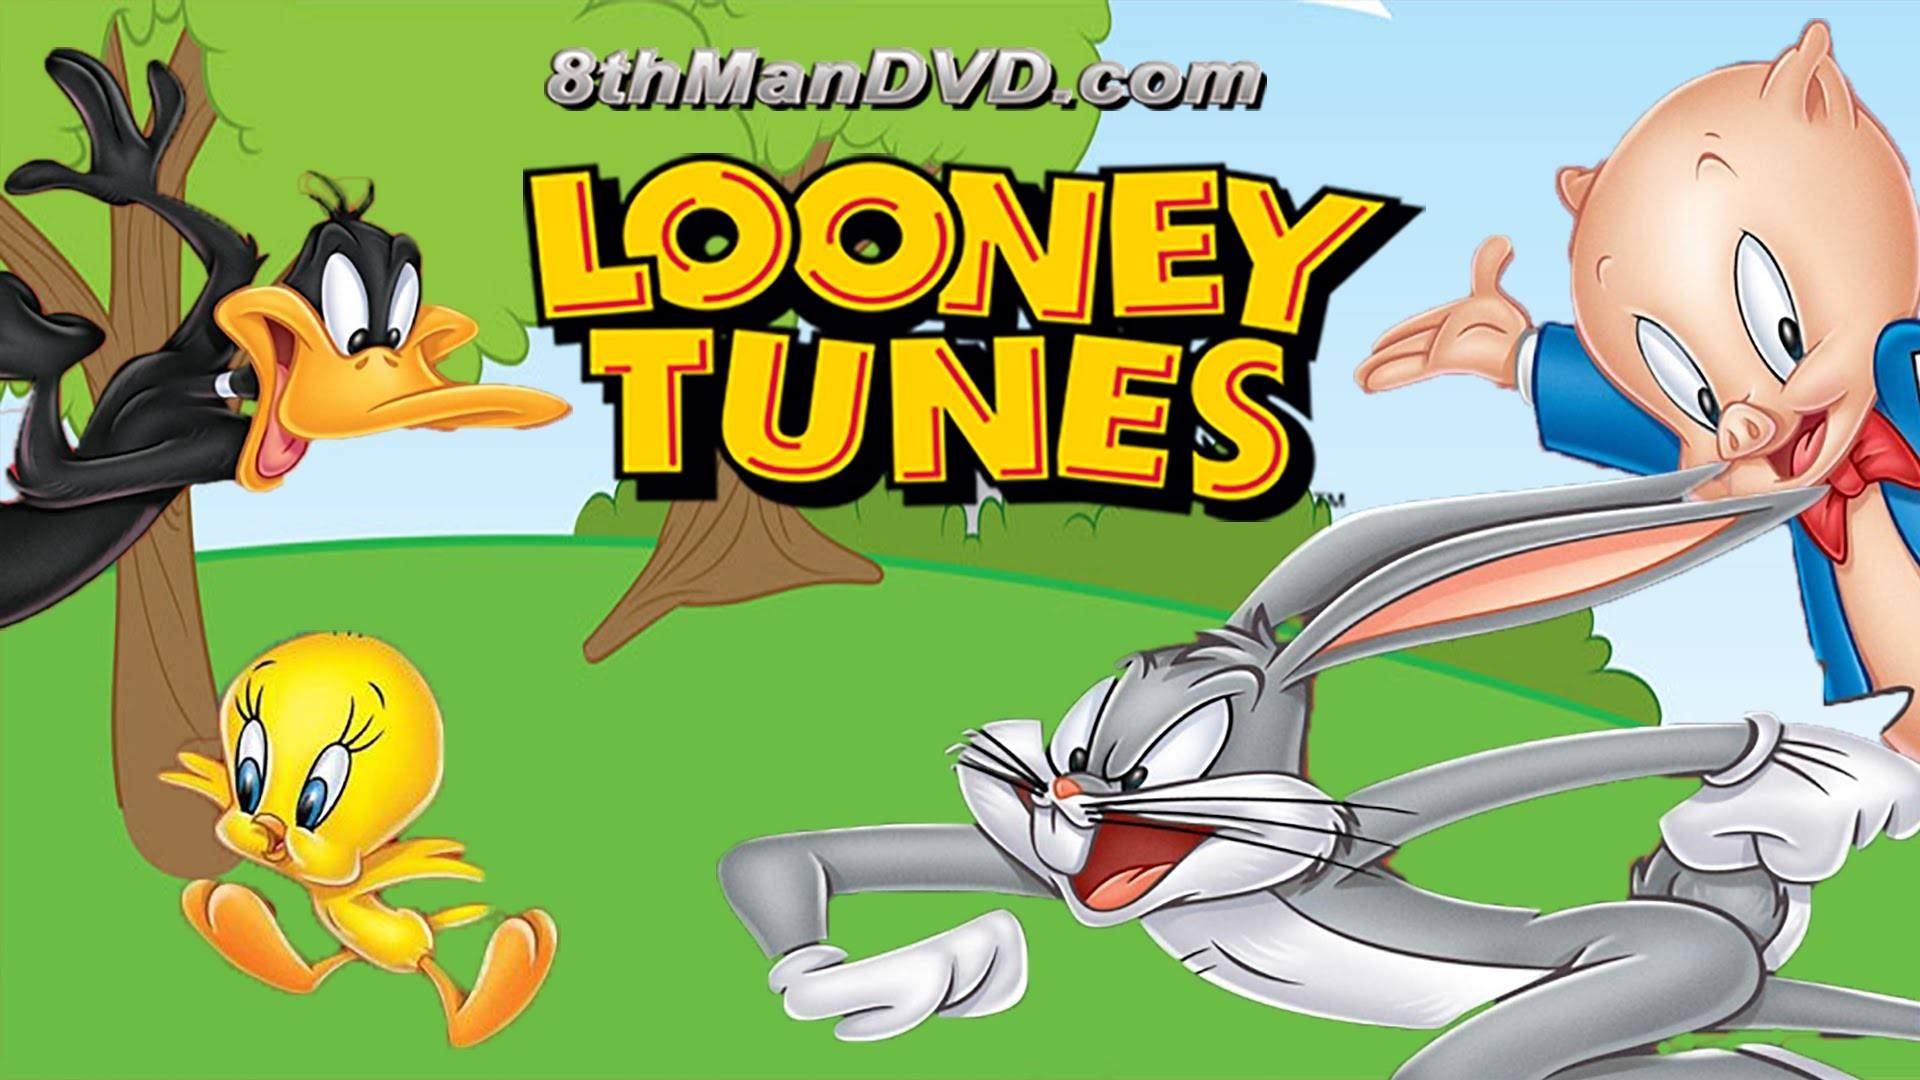 The Biggest Looney Tunes Cartoons Compilation ▻ Over 10 Hours Cartoons For  Children [HD 1080] – YouTube